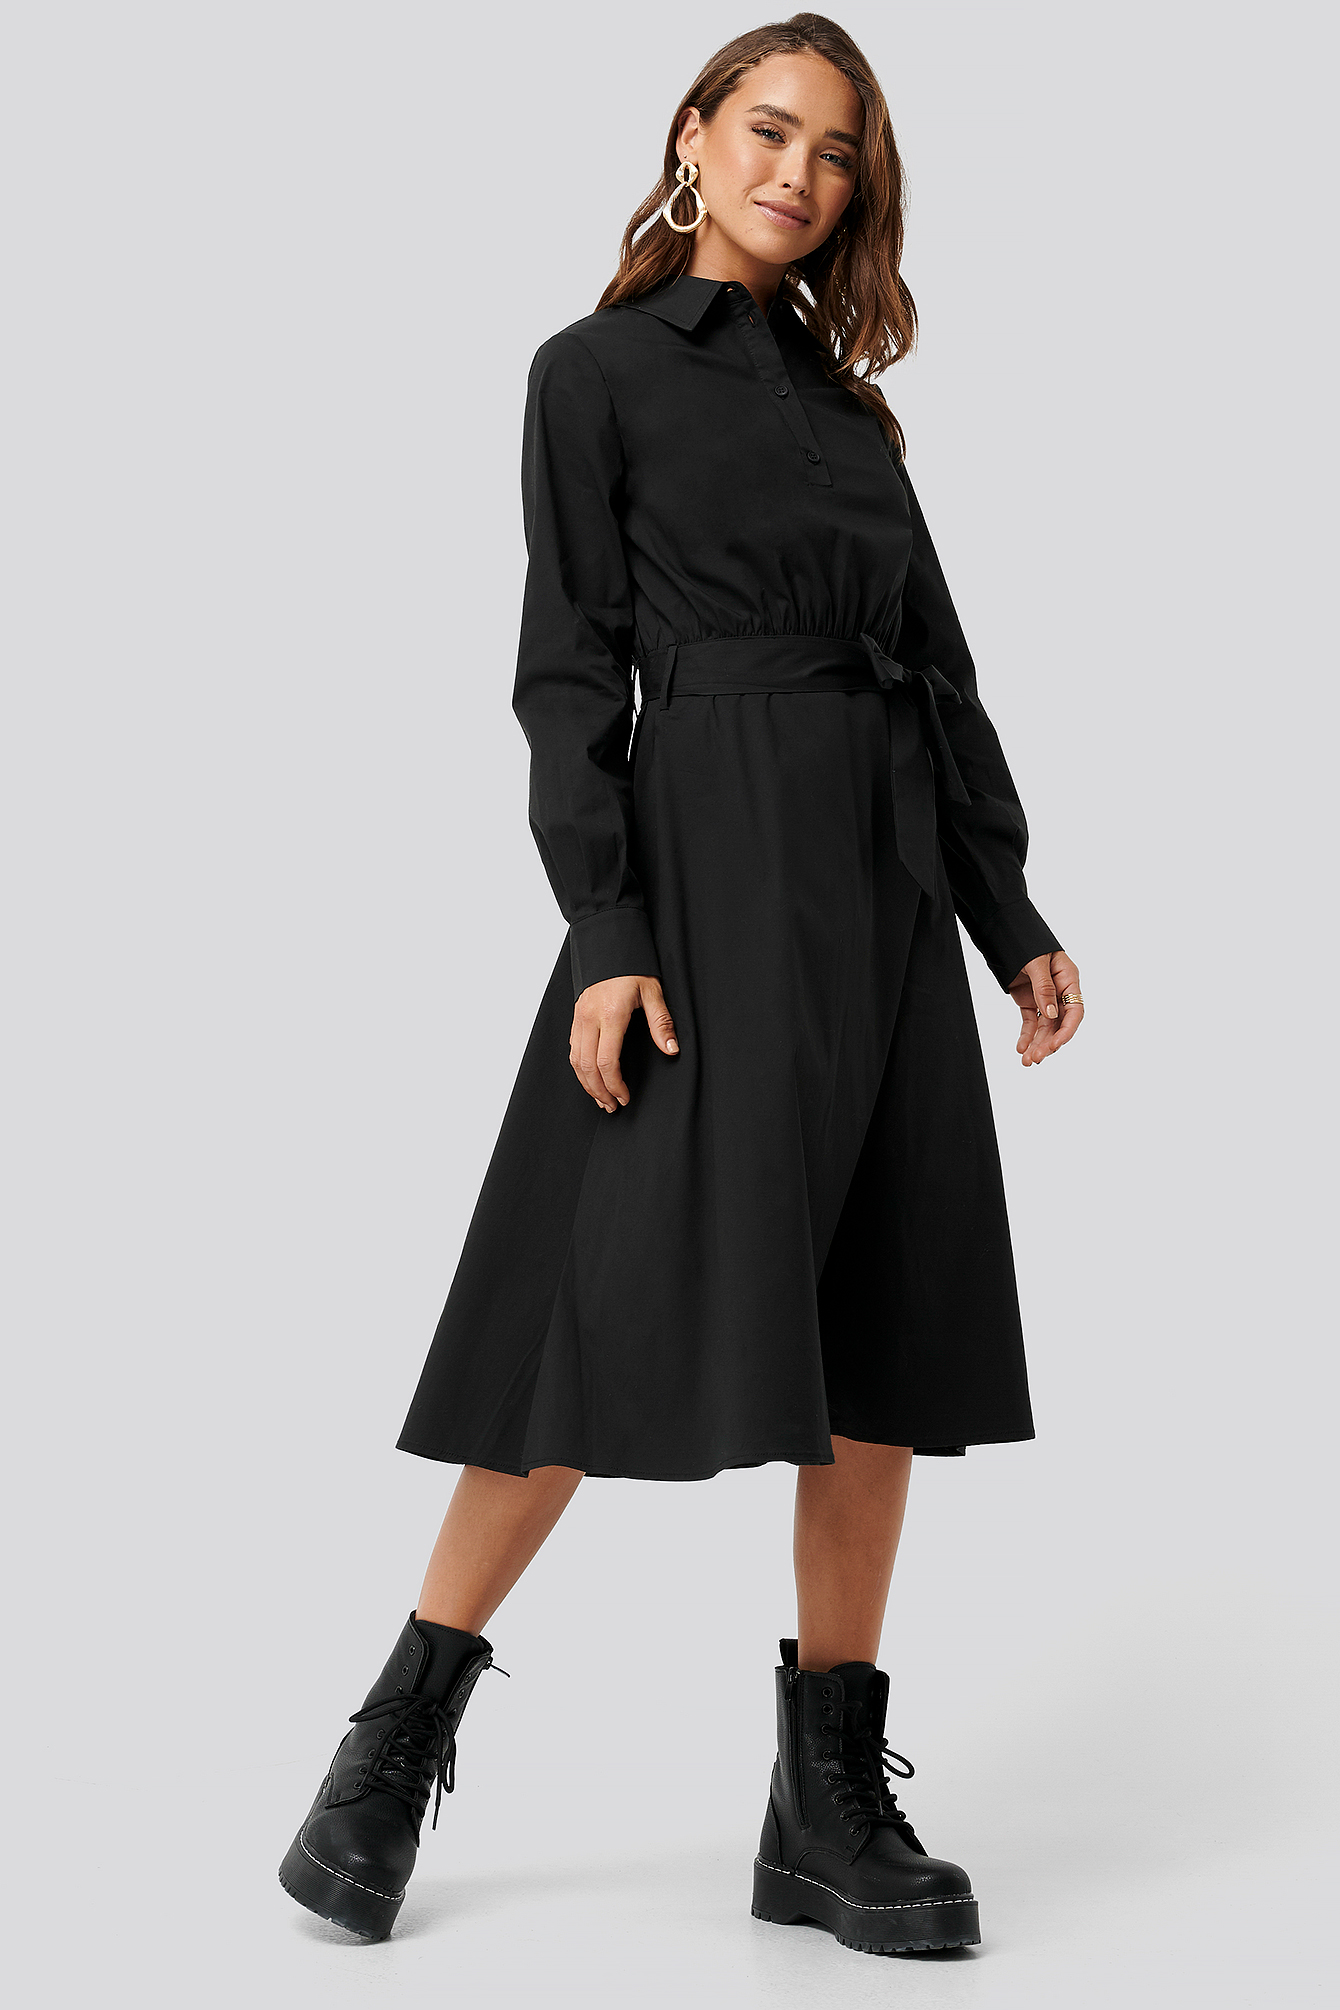 Black Tied Waist Shirt Dress